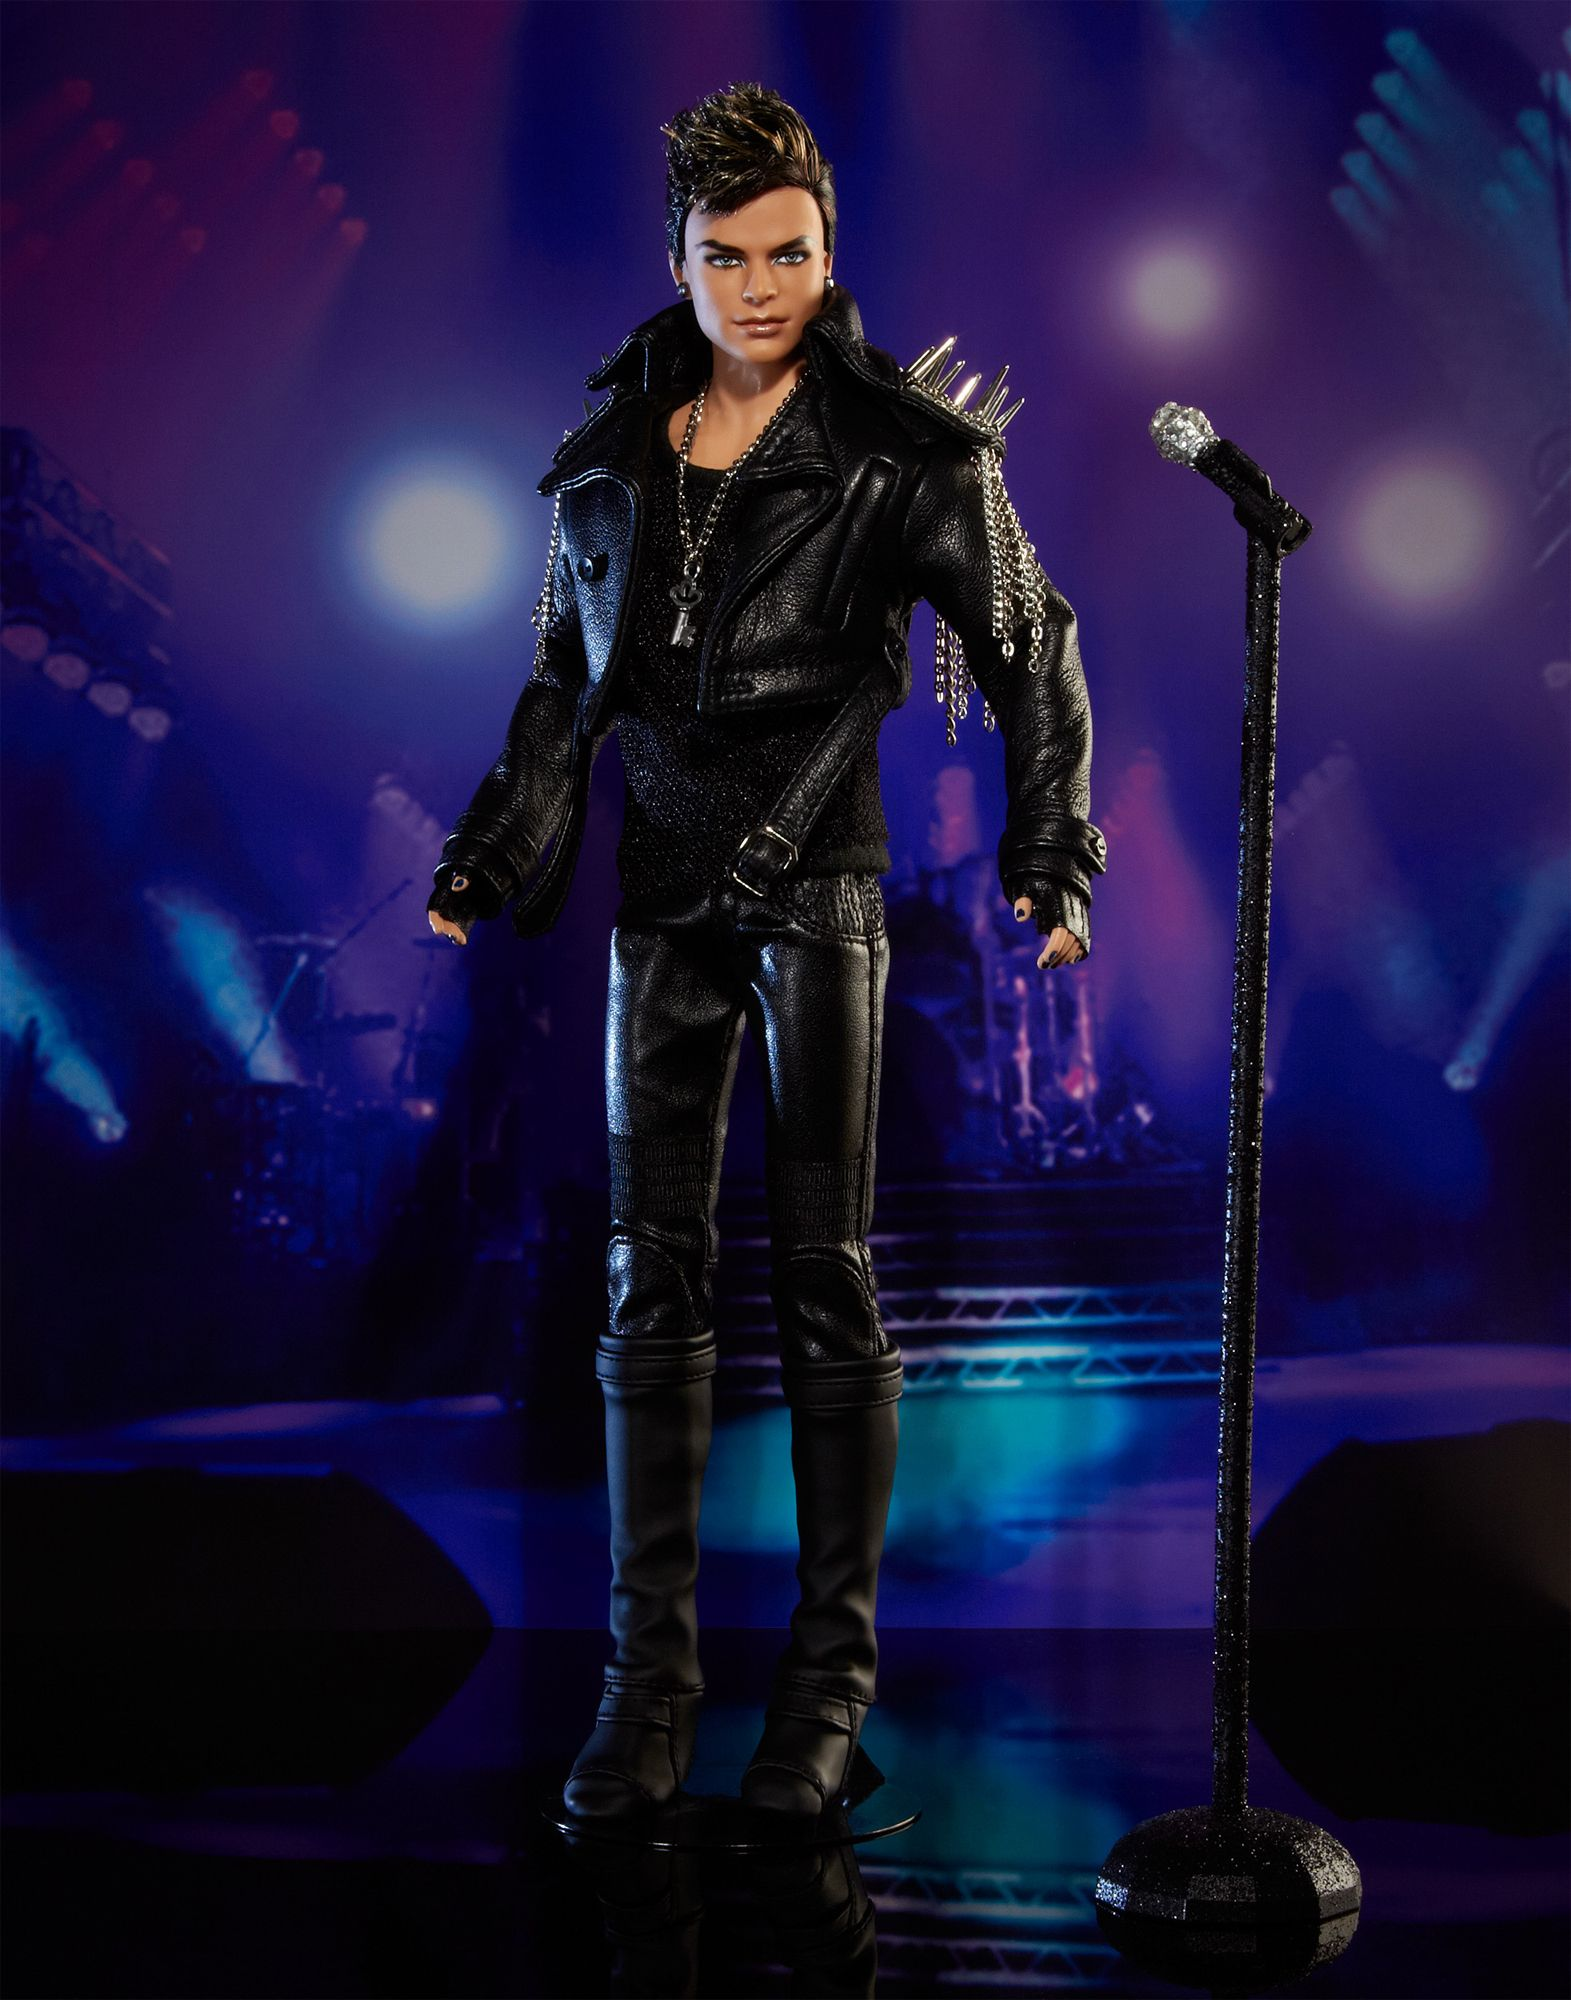 Mattel's OOAK Adam Lambert doll auctioned by charitybuzz.com to benefit Project Angel Food.